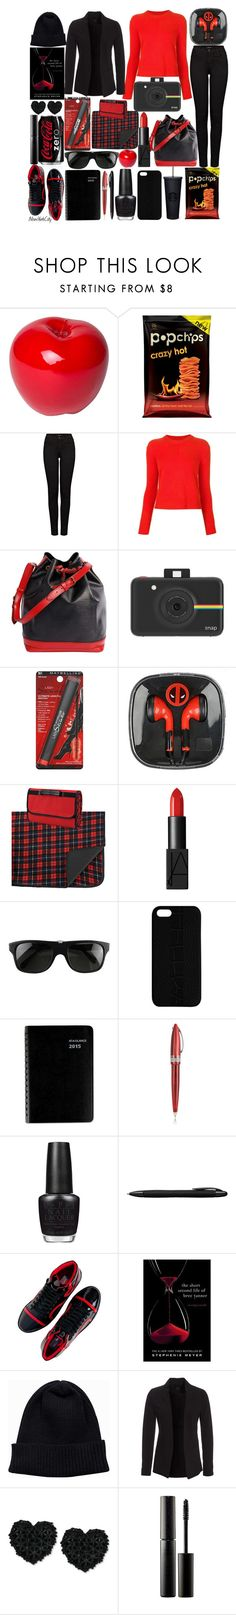 """""""sunday picnic in central park"""" by j-n-a ❤ liked on Polyvore featuring Bitossi, J Brand, rag & bone, Louis Vuitton, Polaroid, Maybelline, Picnic at Ascot, NARS Cosmetics, Ugo Cacciatori e Maison Takuya"""